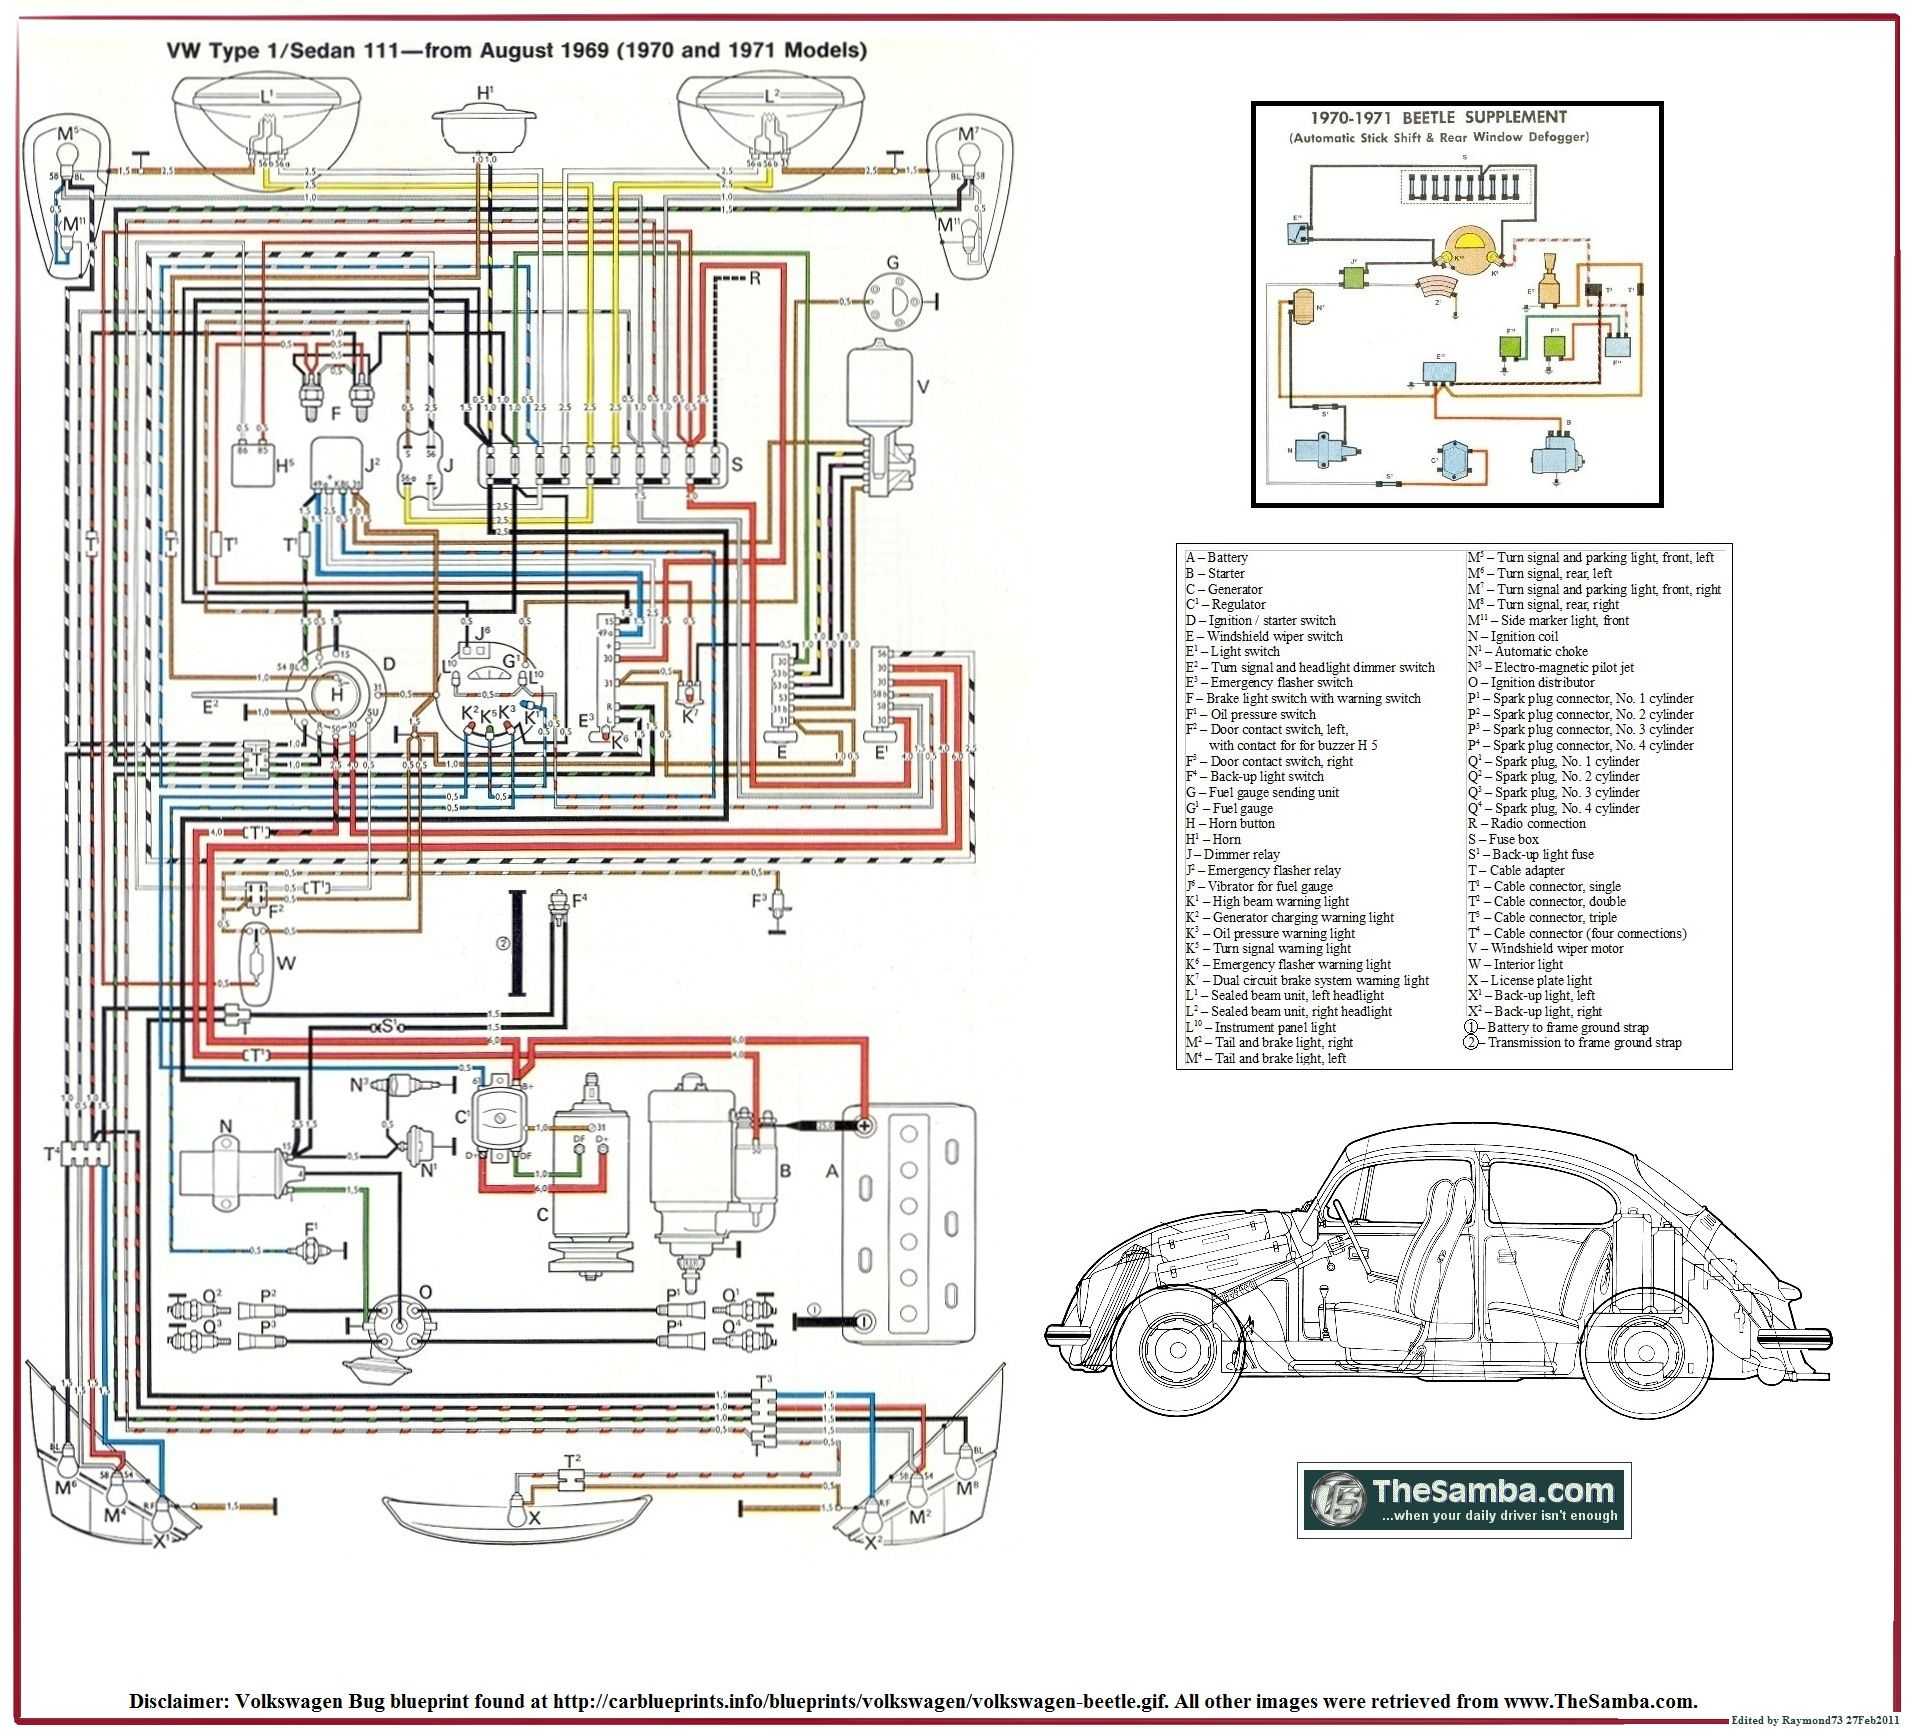 99 vw beetle fuse box 1999 volkswagen beetle wiring diagram wiring diagram  1999 volkswagen beetle wiring diagram